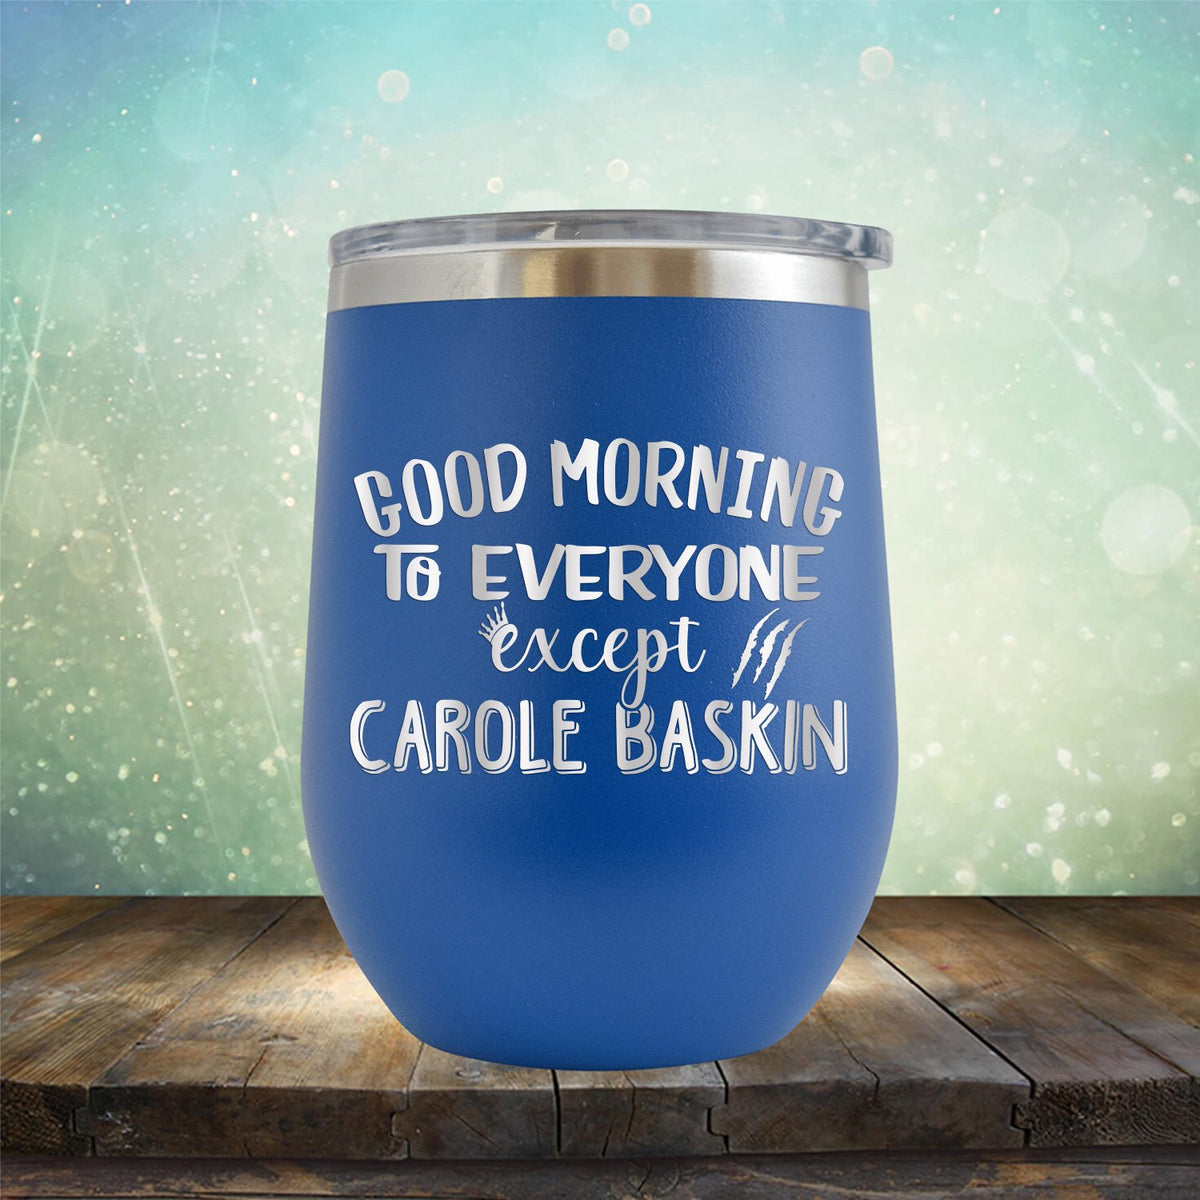 Good Morning to Everyone Except Carole Baskin - Stemless Wine Cup